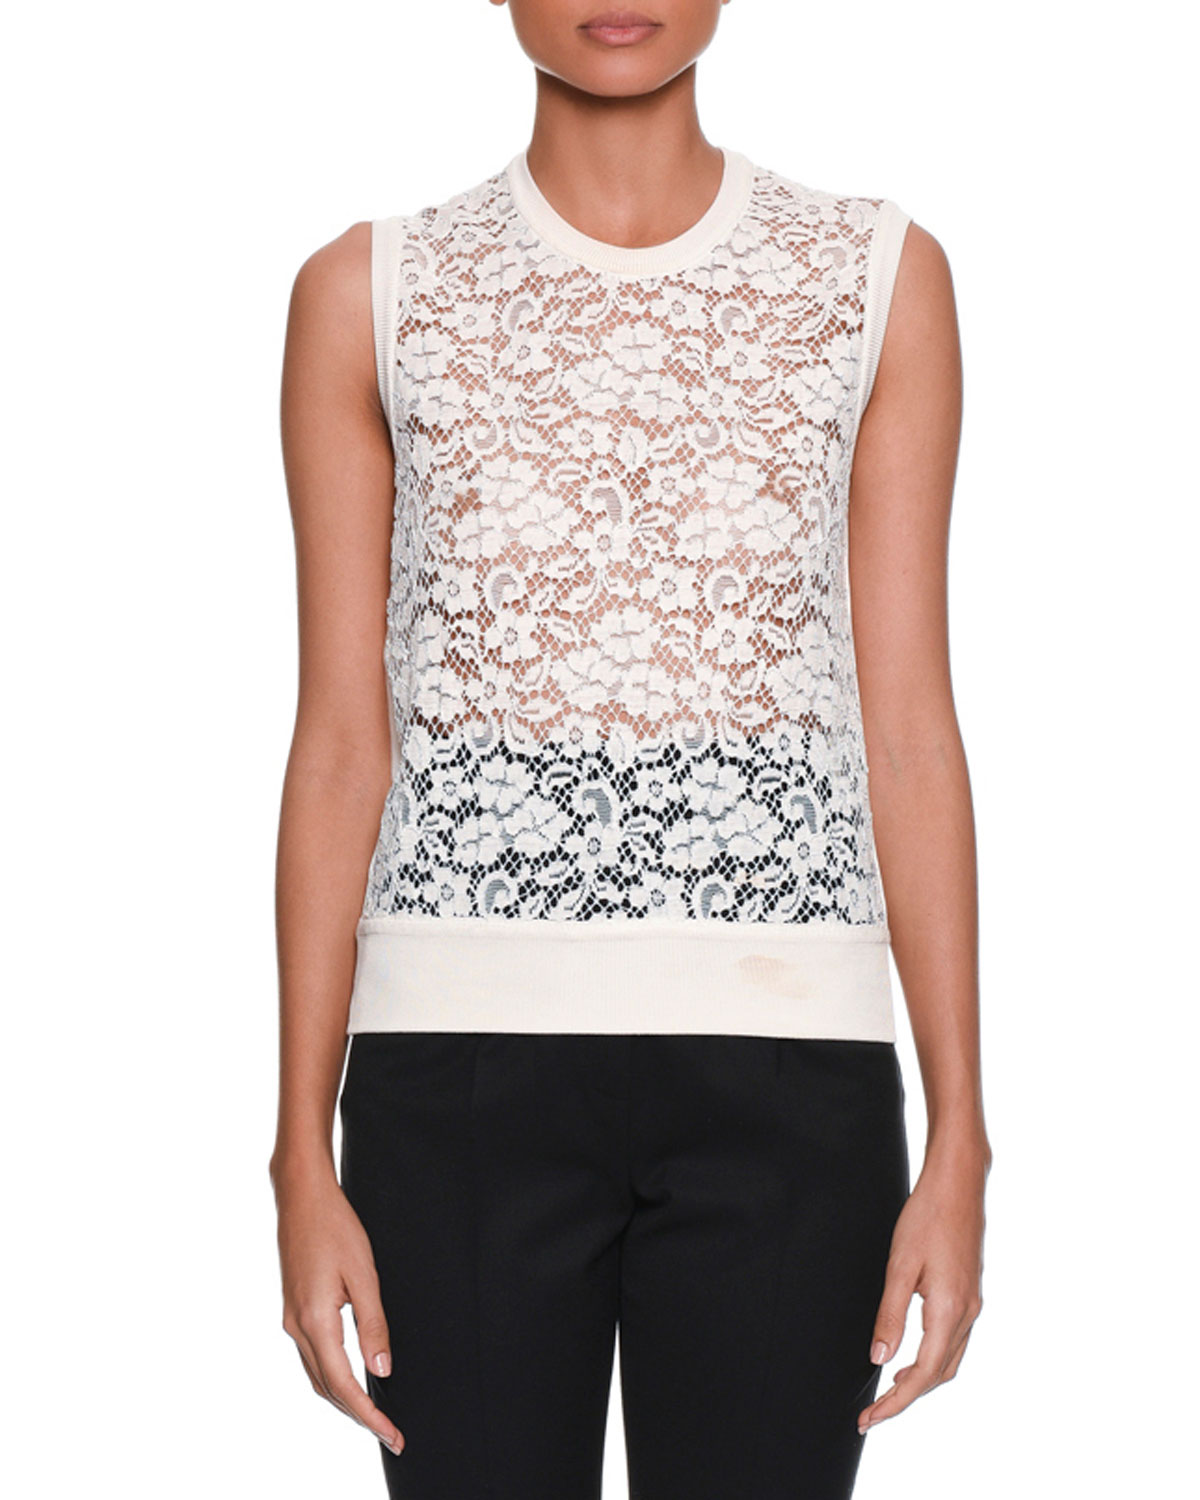 67e0f7ae155f5c Dolce   Gabbana Sleeveless Rose-Lace Front Knit Shell Top